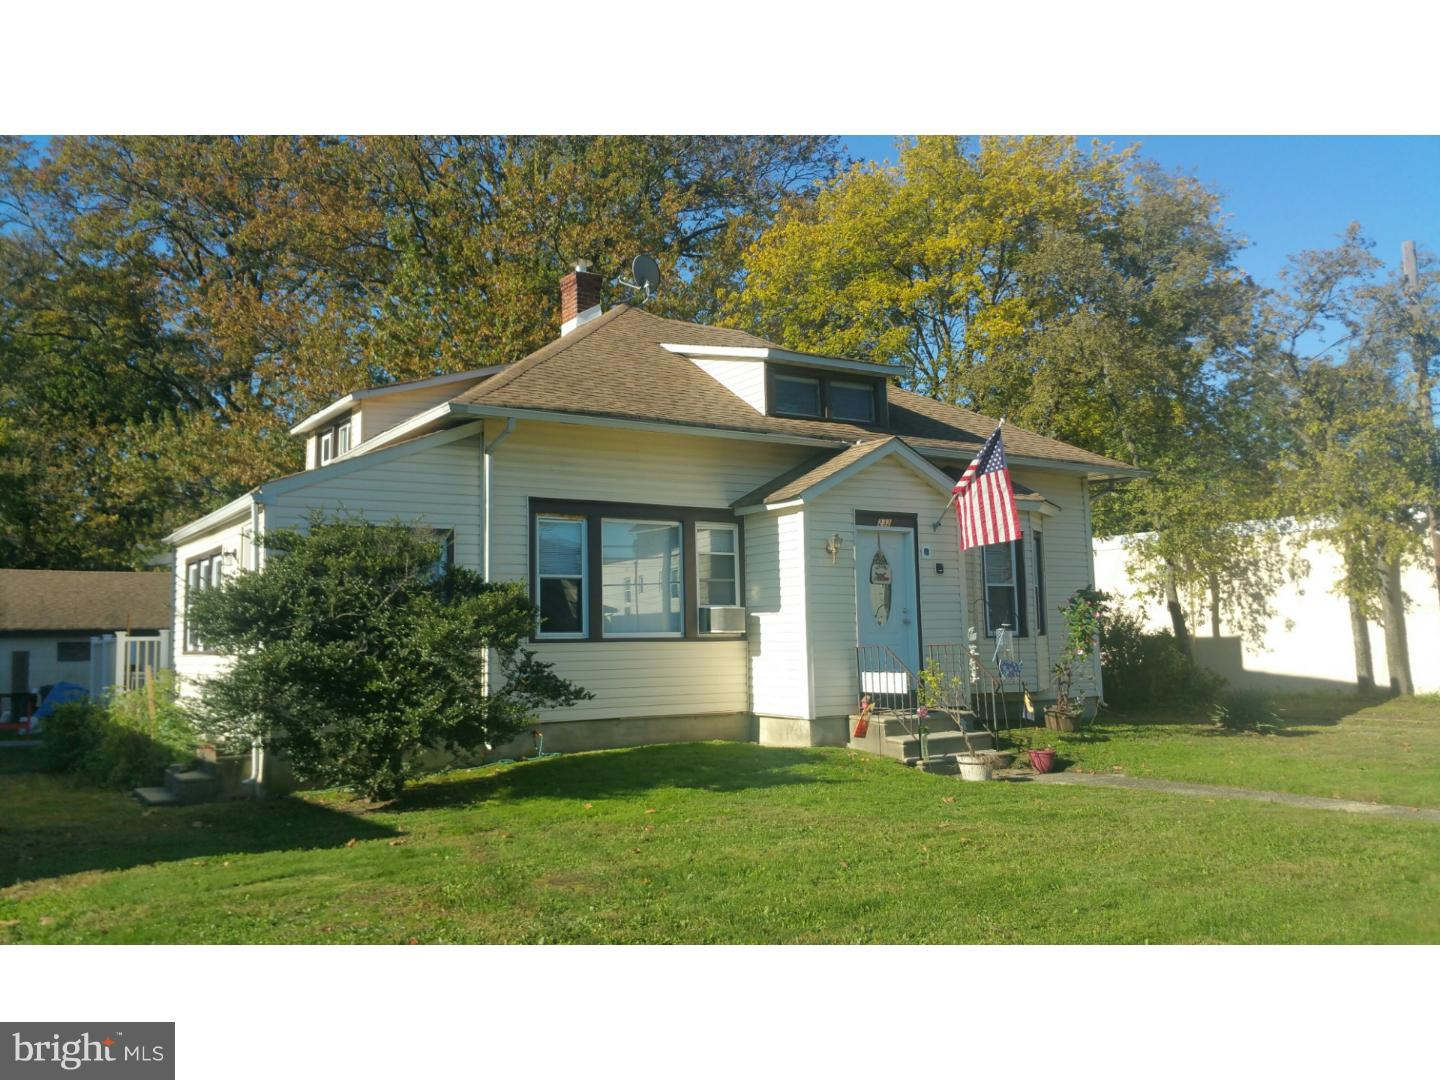 Triplex for Sale at 232 S WHITE HORSE PIKE Audubon, New Jersey 08106 United States